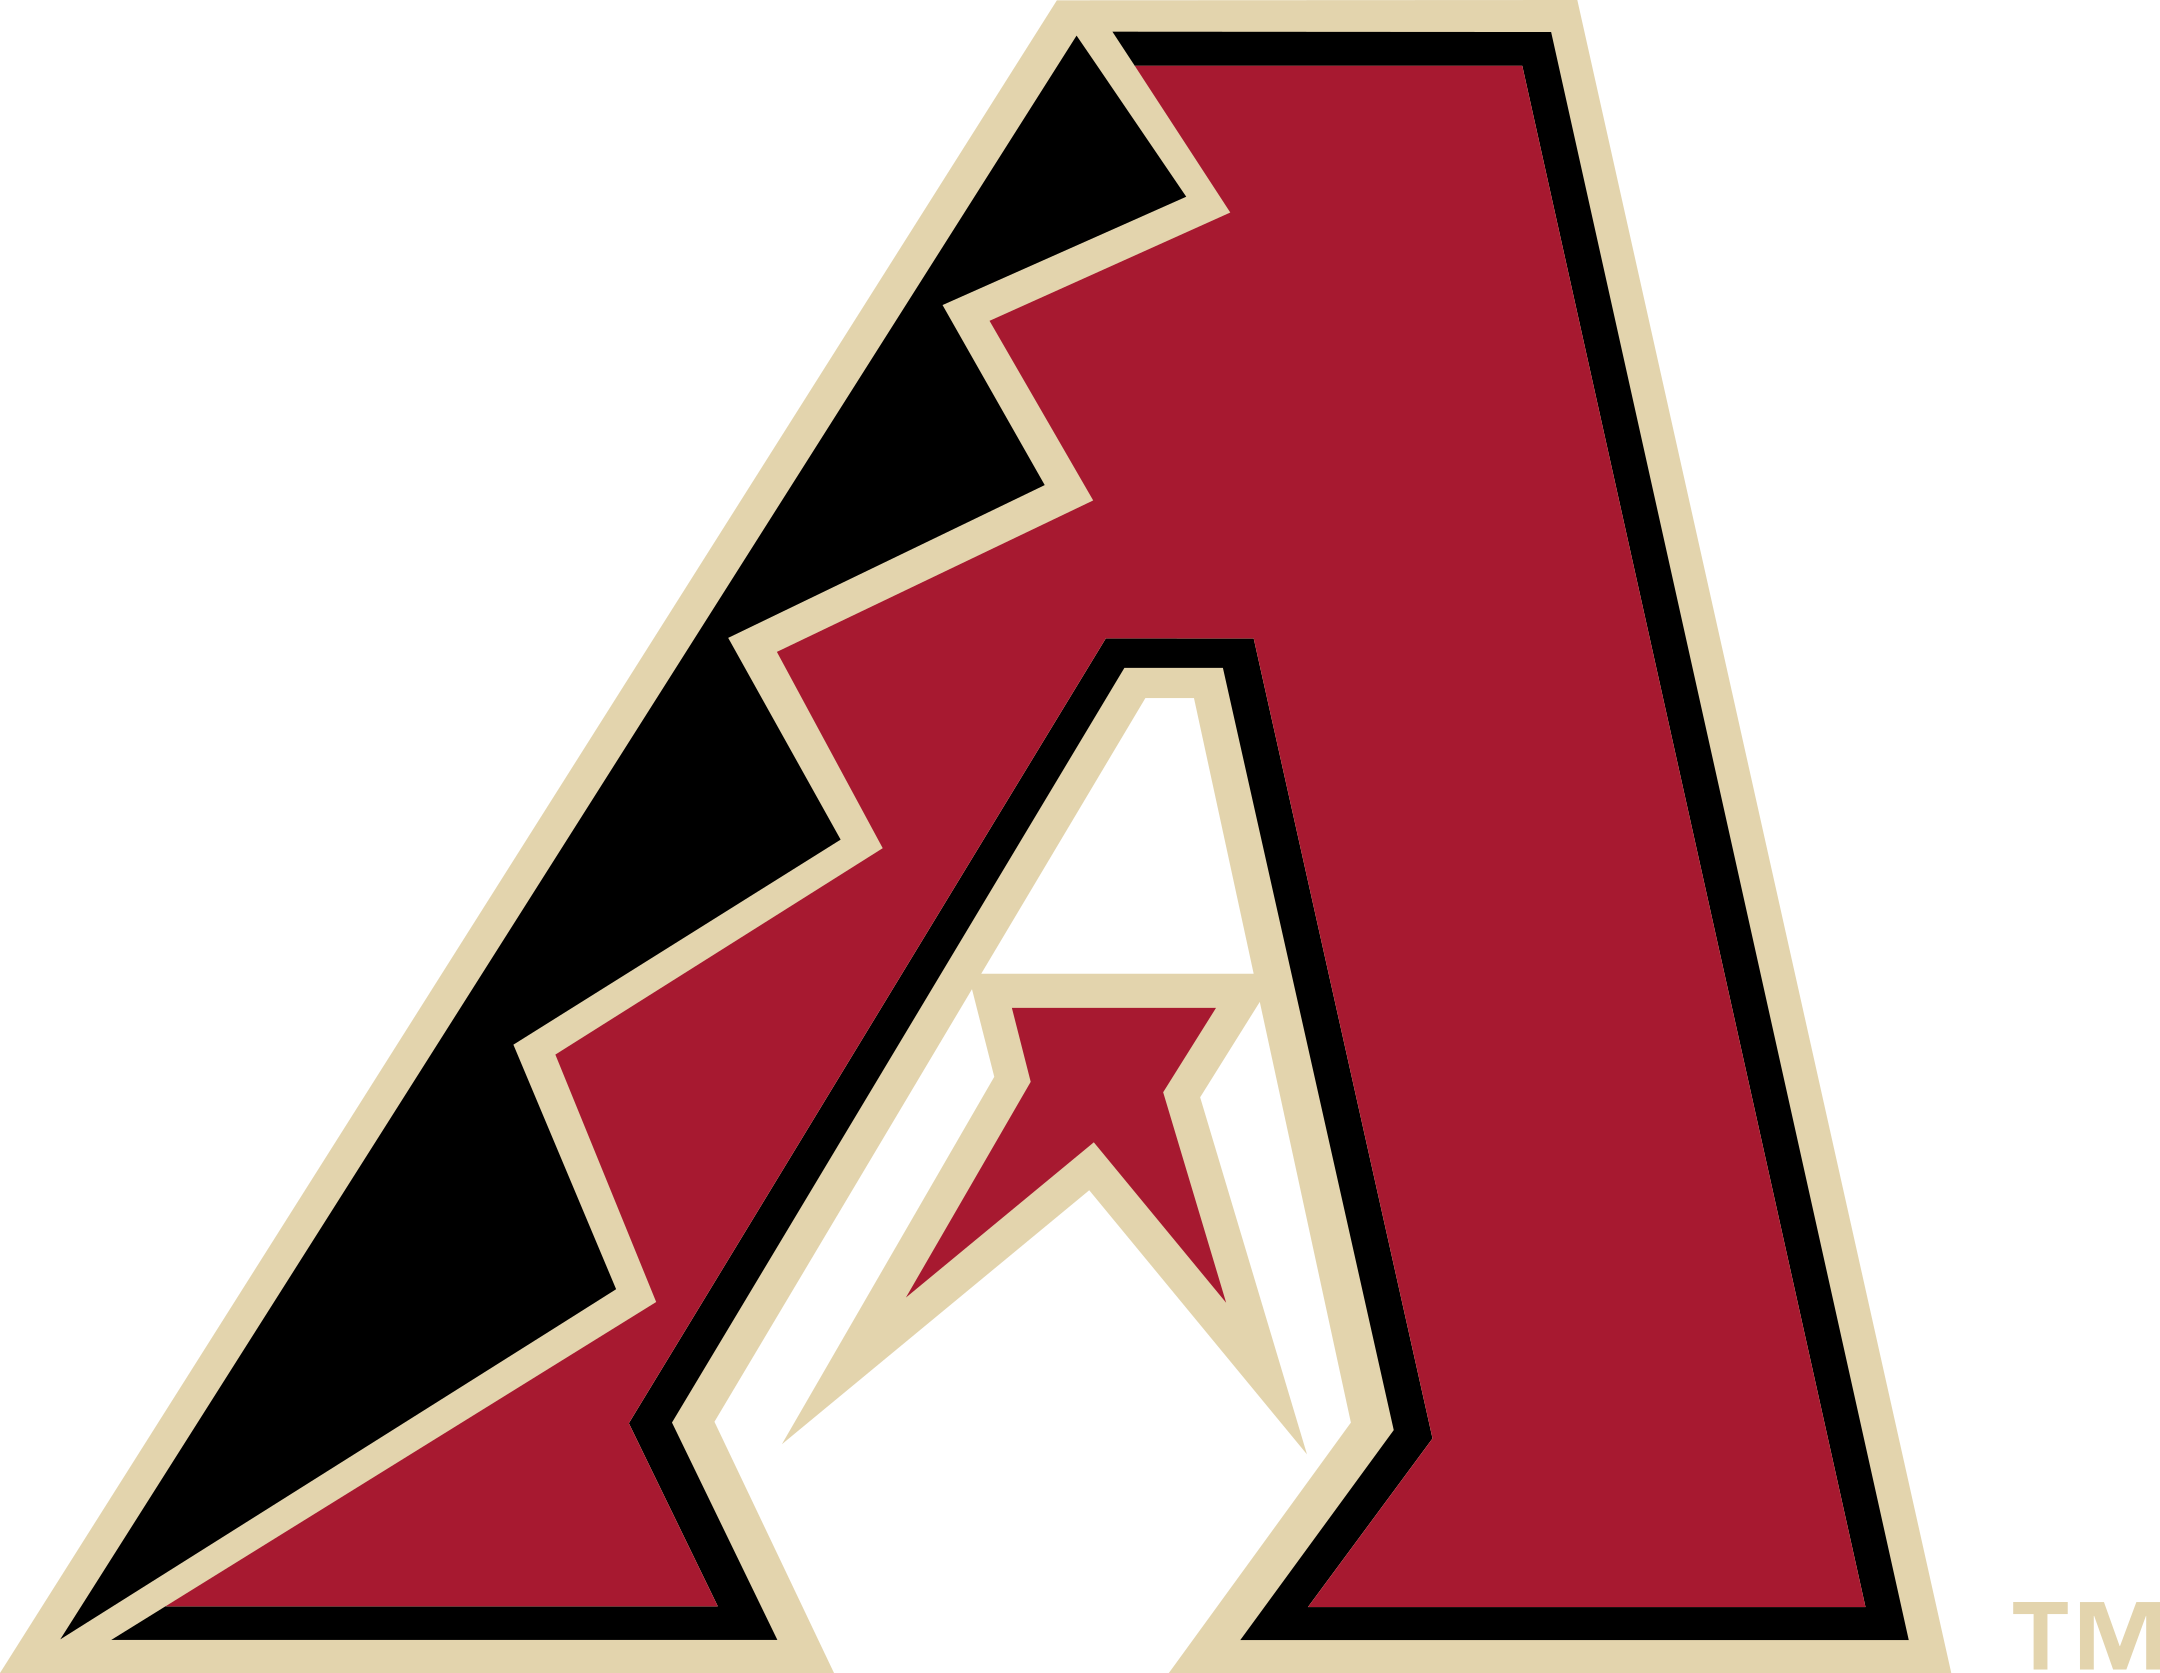 arizona diamondbacks logo 1 - Arizona Diamondbacks Logo